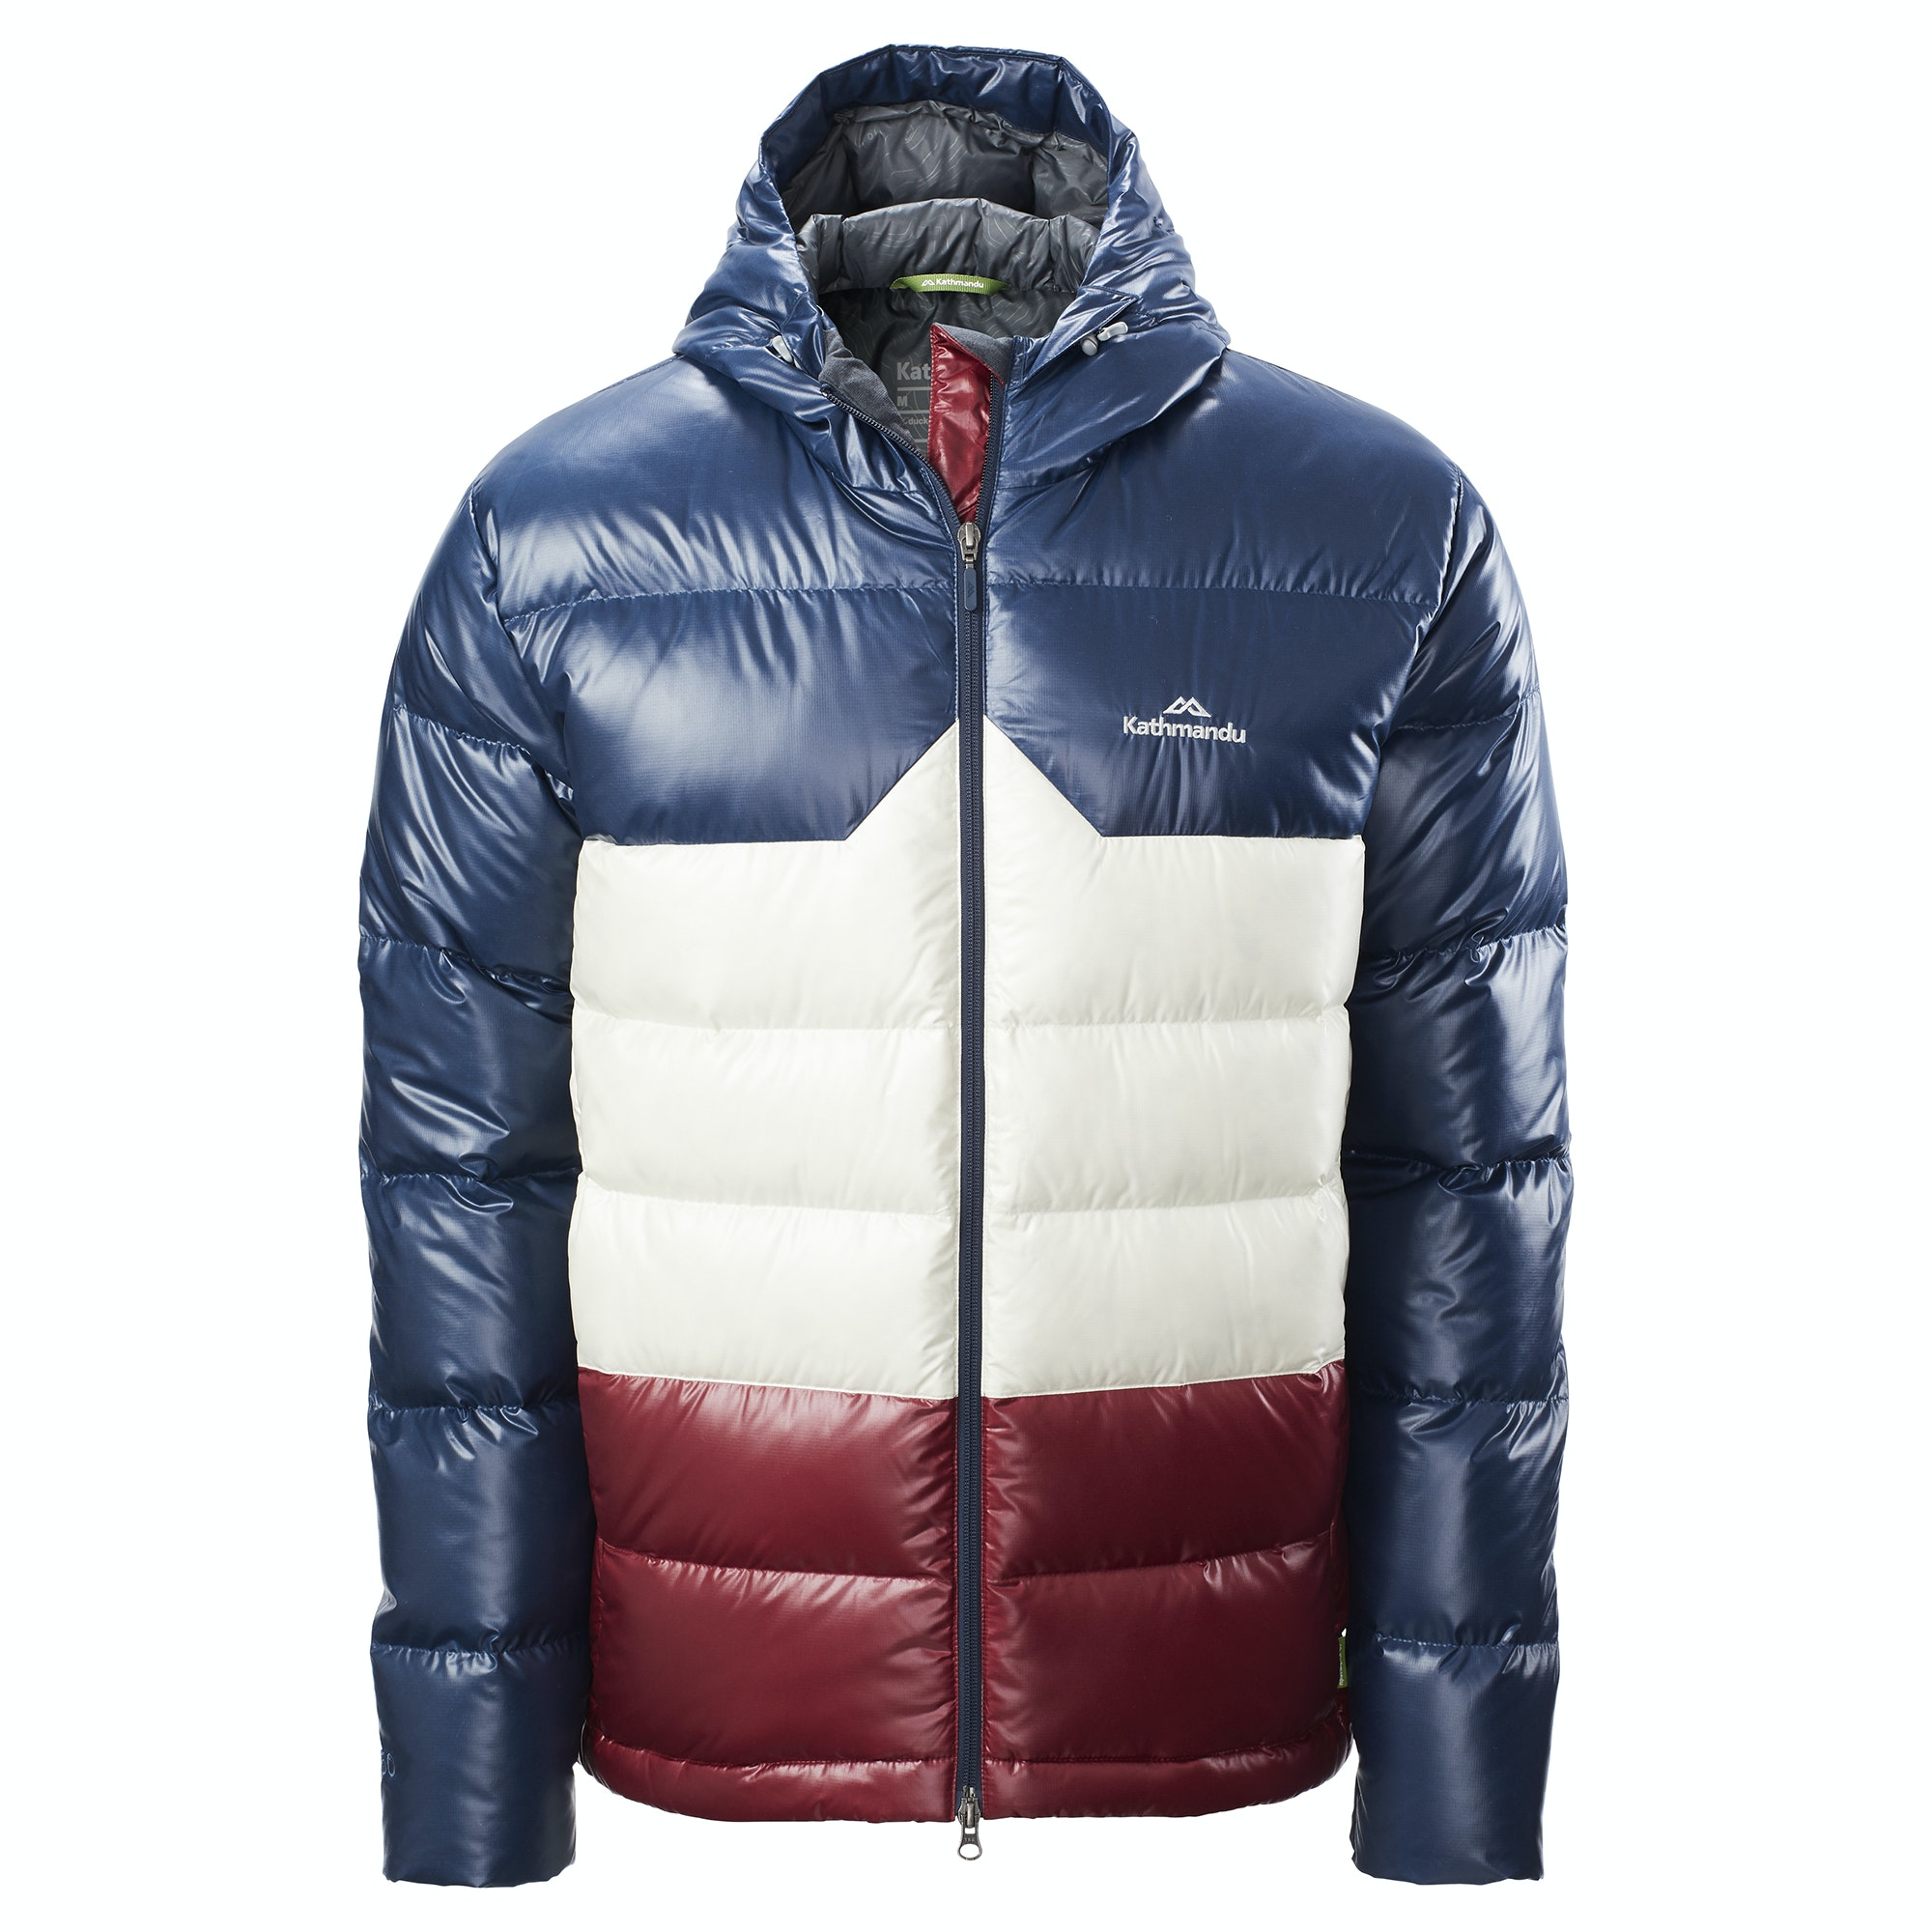 Jackets & Coats Original Winter Men Solid Color Down Jacket Slim Fit Hooded Long Sleeve Coat Outwear New Durable Service